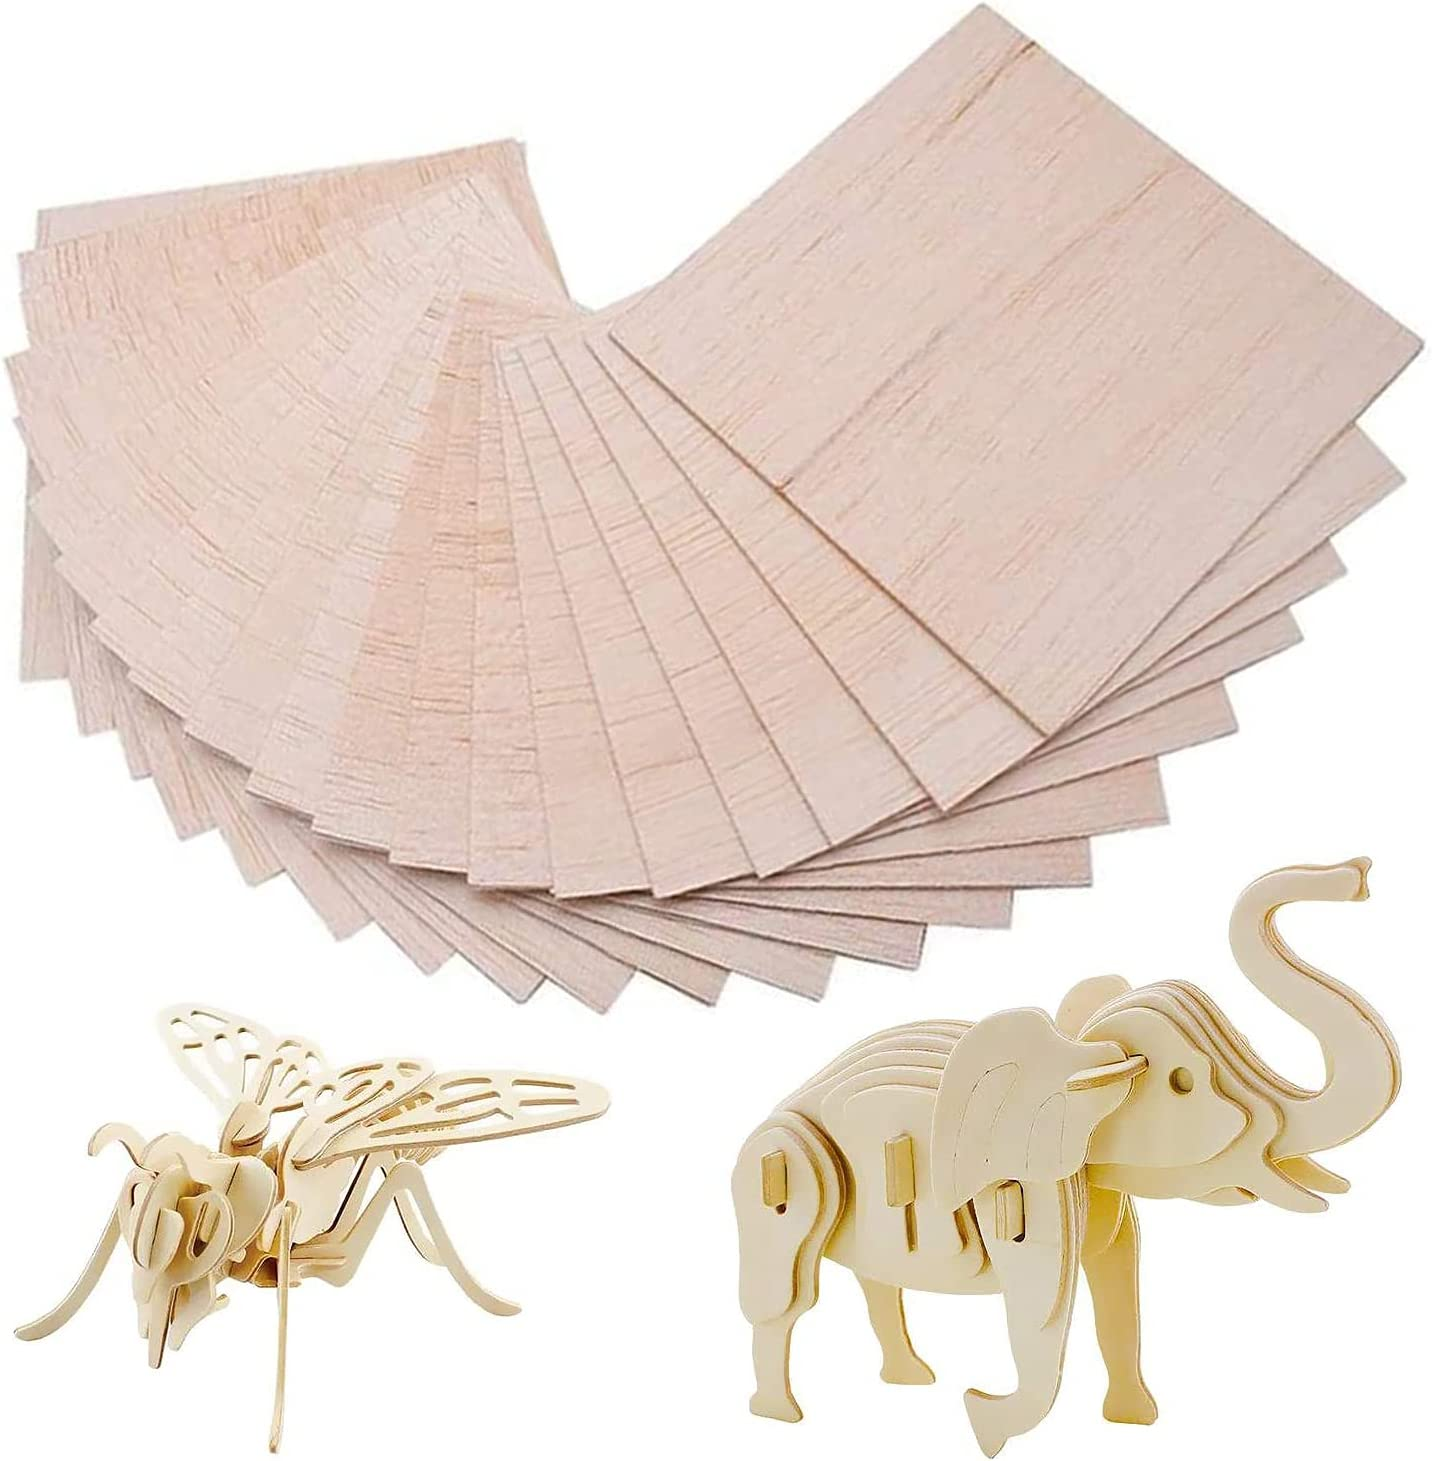 15 PCS San Antonio Mall Balsa Wood Sheets - Wooden Unfinished Boards Colorado Springs Mall Plywood Thin